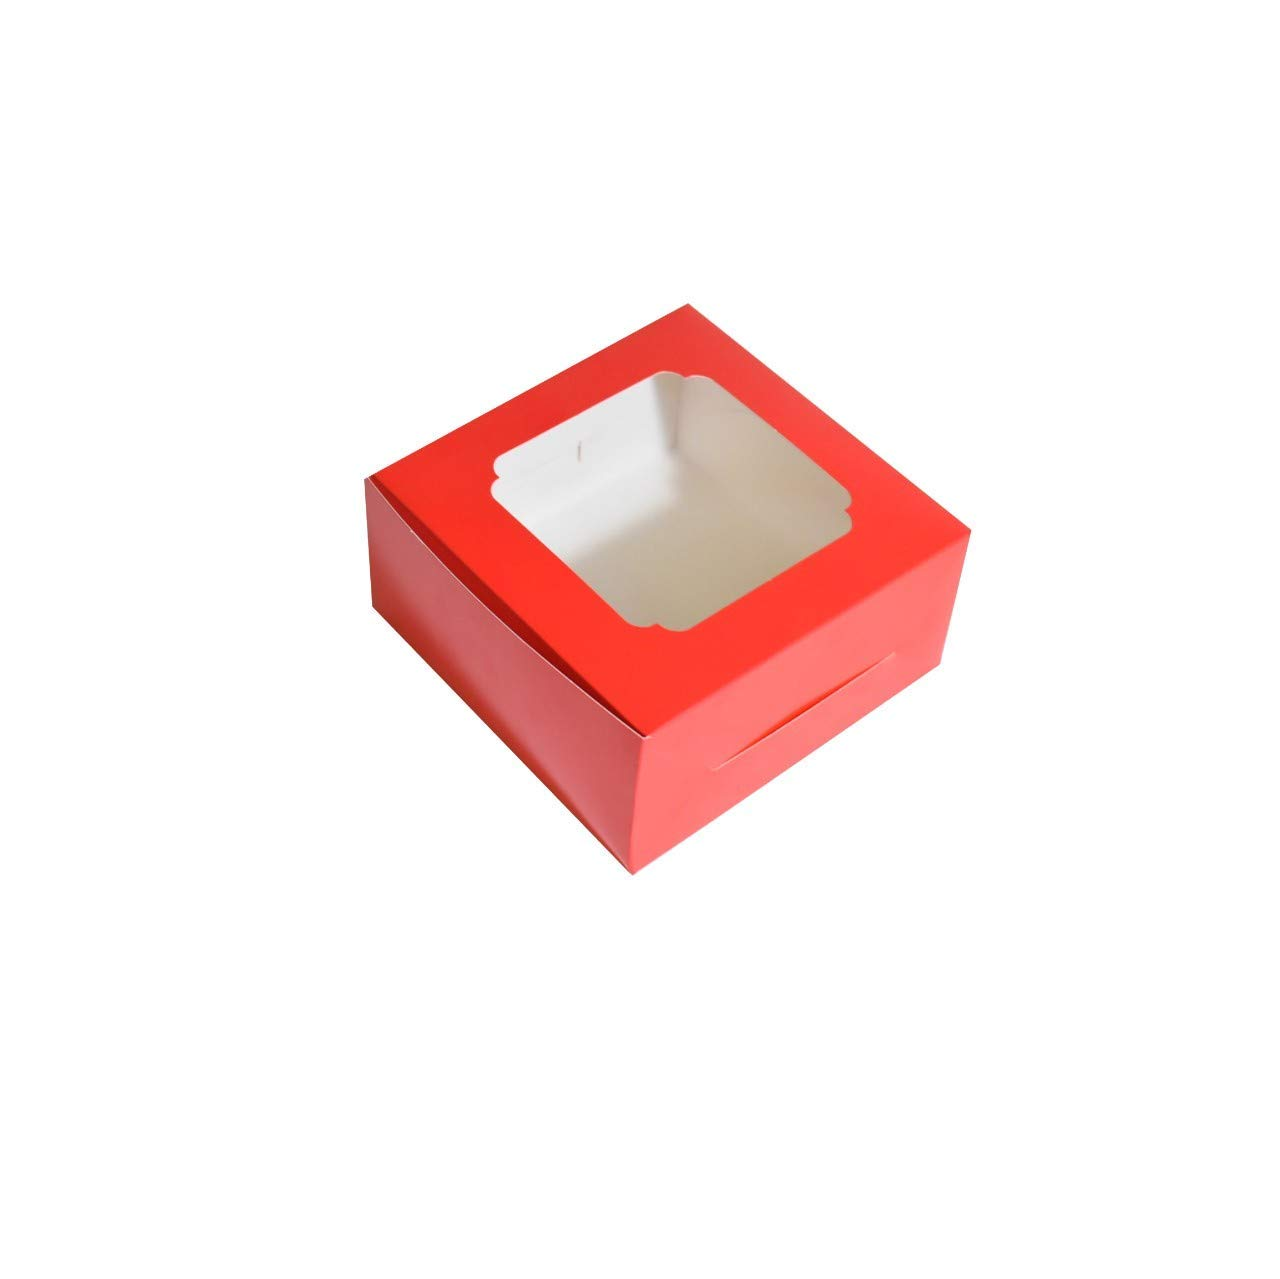 NEWKIE 20 Pack Bakery Boxes Cupcake Cookie Cardboard Container with Window - 6 x 6 x 3 Inch - Pastry Treat Dessert Box for Cake, Macaron, Donut, Pie, Muffin (Red)